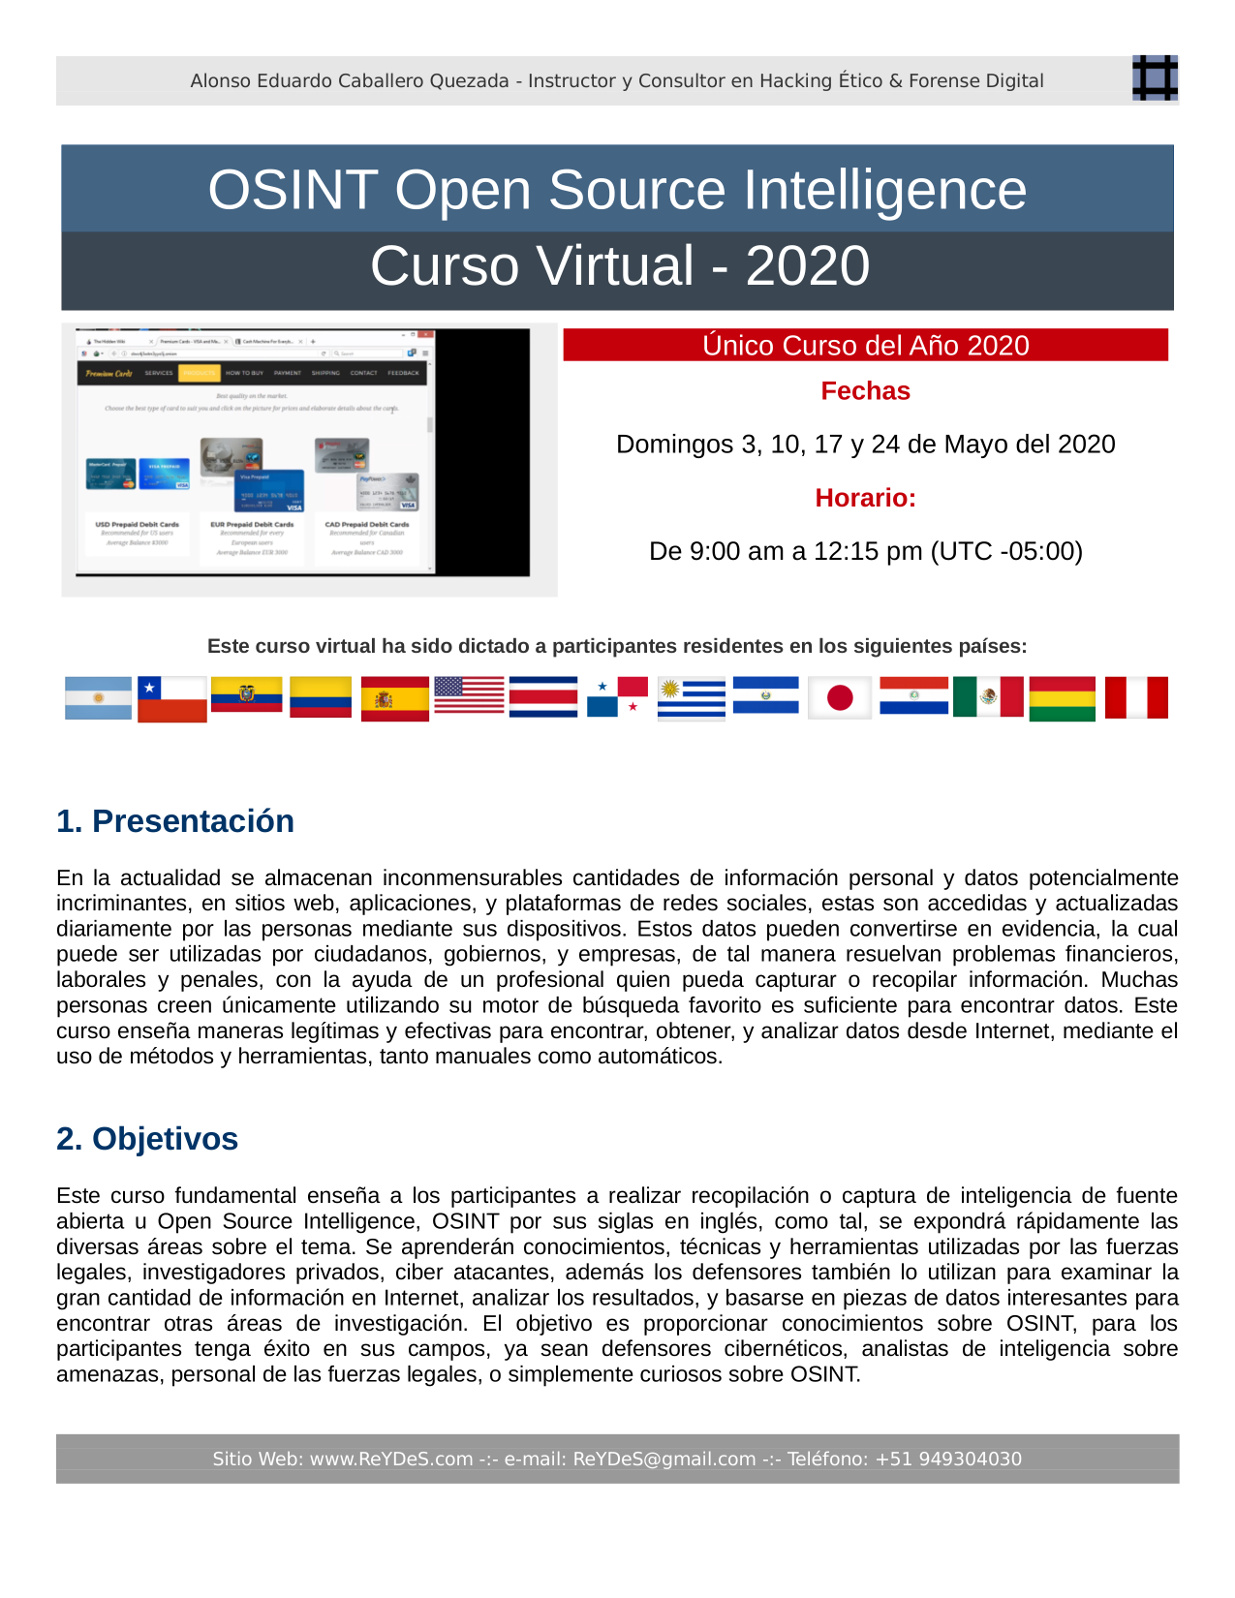 Único Curso Virtual de OSINT Open Source Intelligence 2020